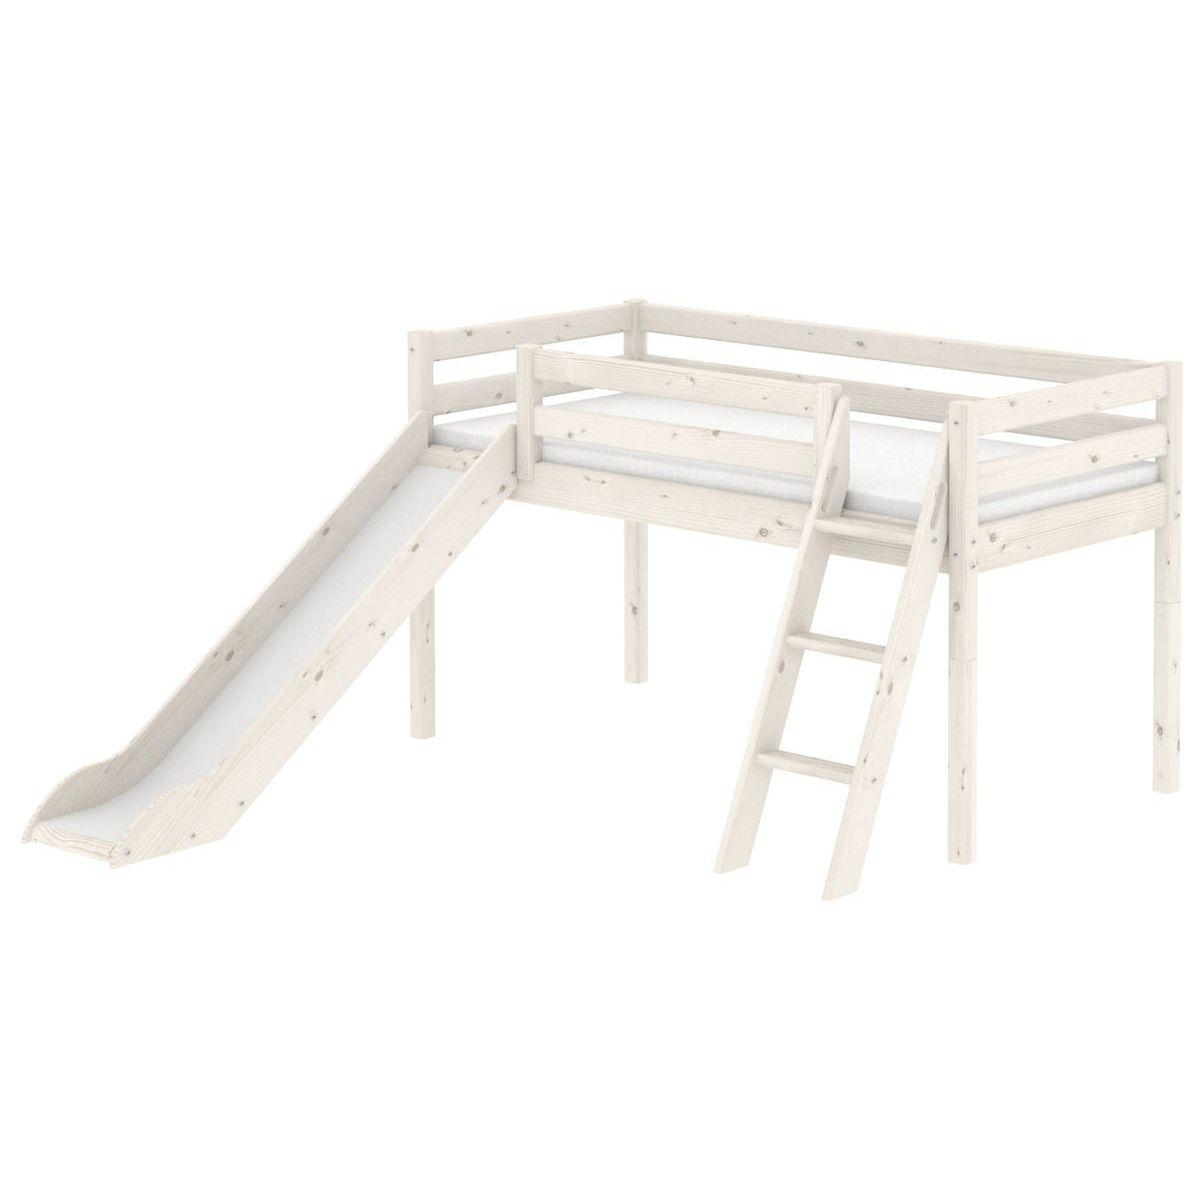 Cama media alta 90x200 CLASSIC Flexa escalera inclinada tobogán blanco cal